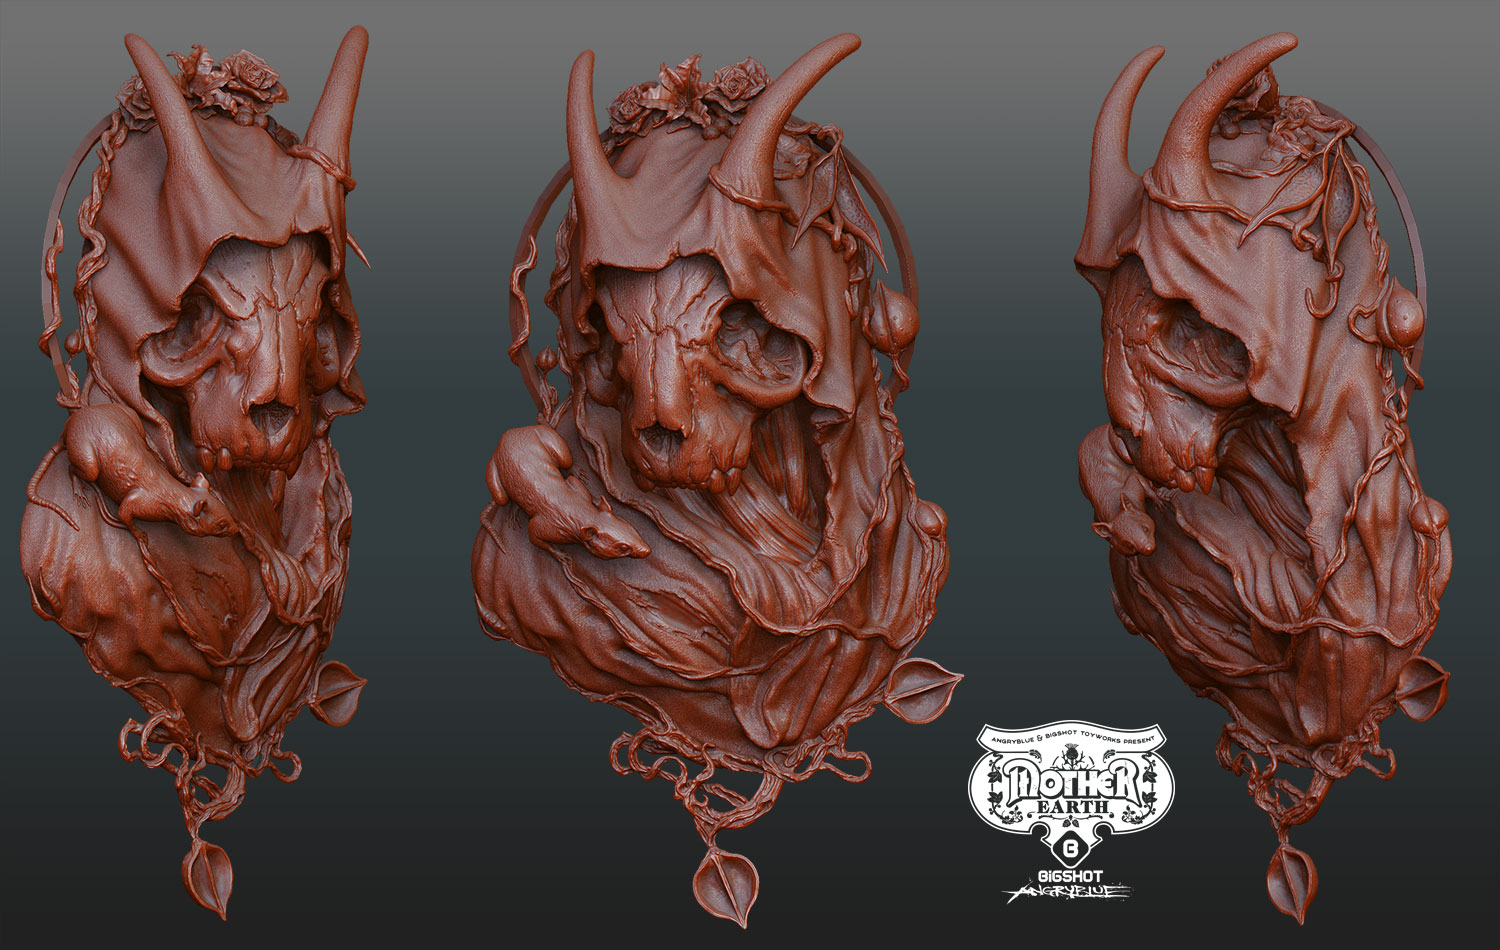 Early Render from Bigshot Toyworks